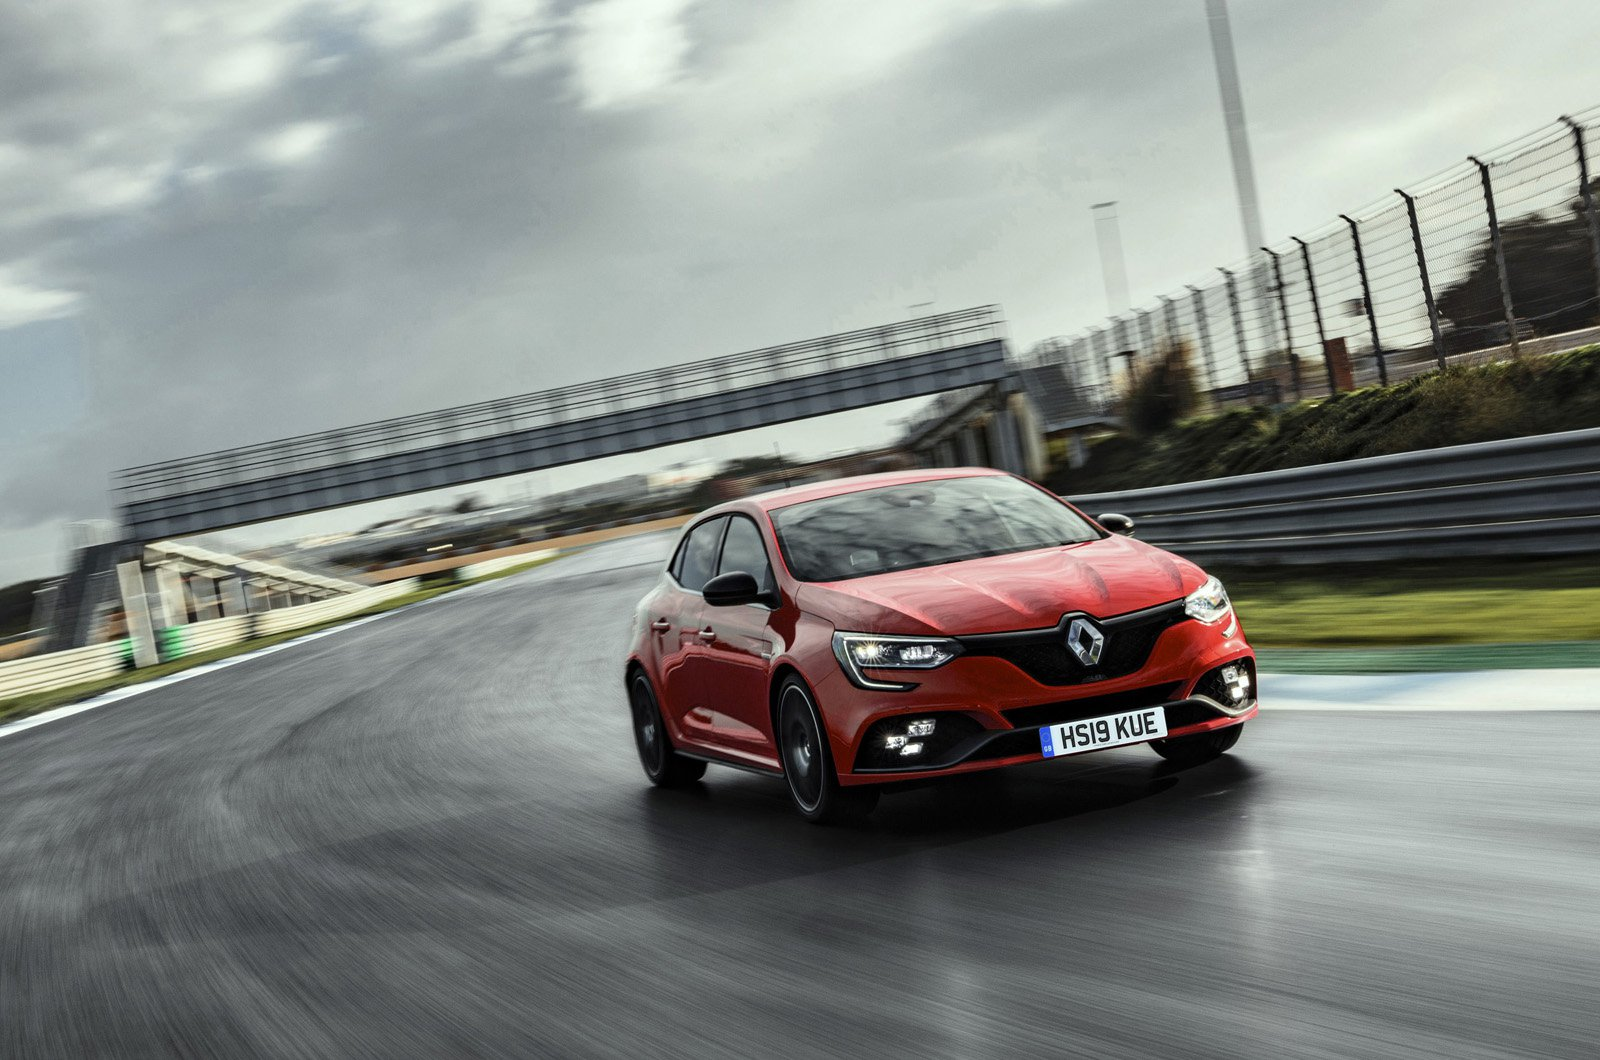 LT Renault Megane RS on race track - front